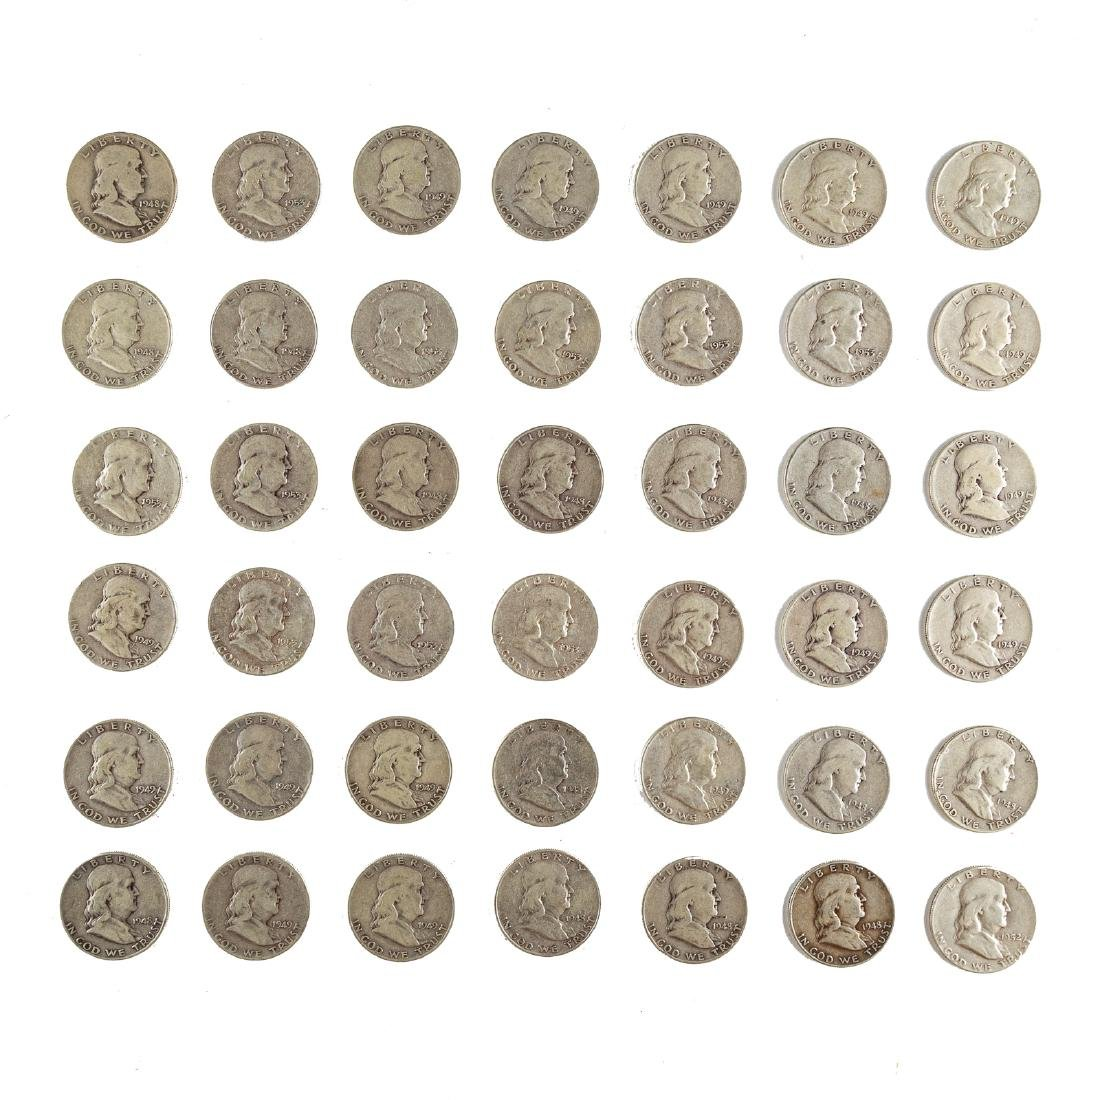 [US] 41 Early Franklin Halves